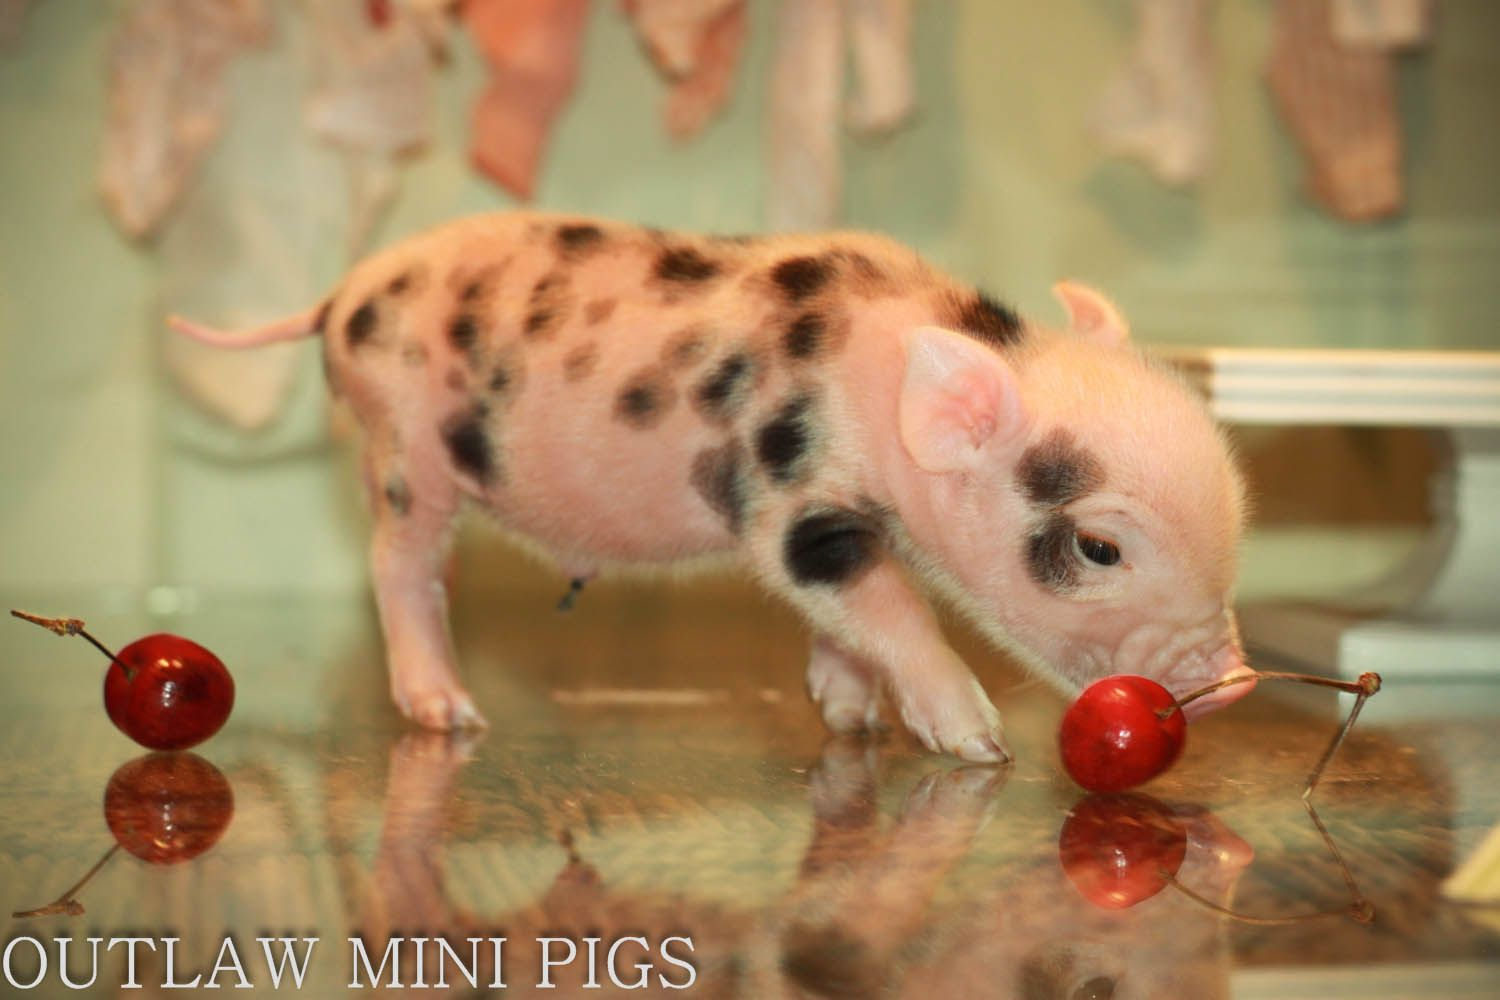 Cherries Anyone? http://www.outlawminipigs.com/available-piglets.html